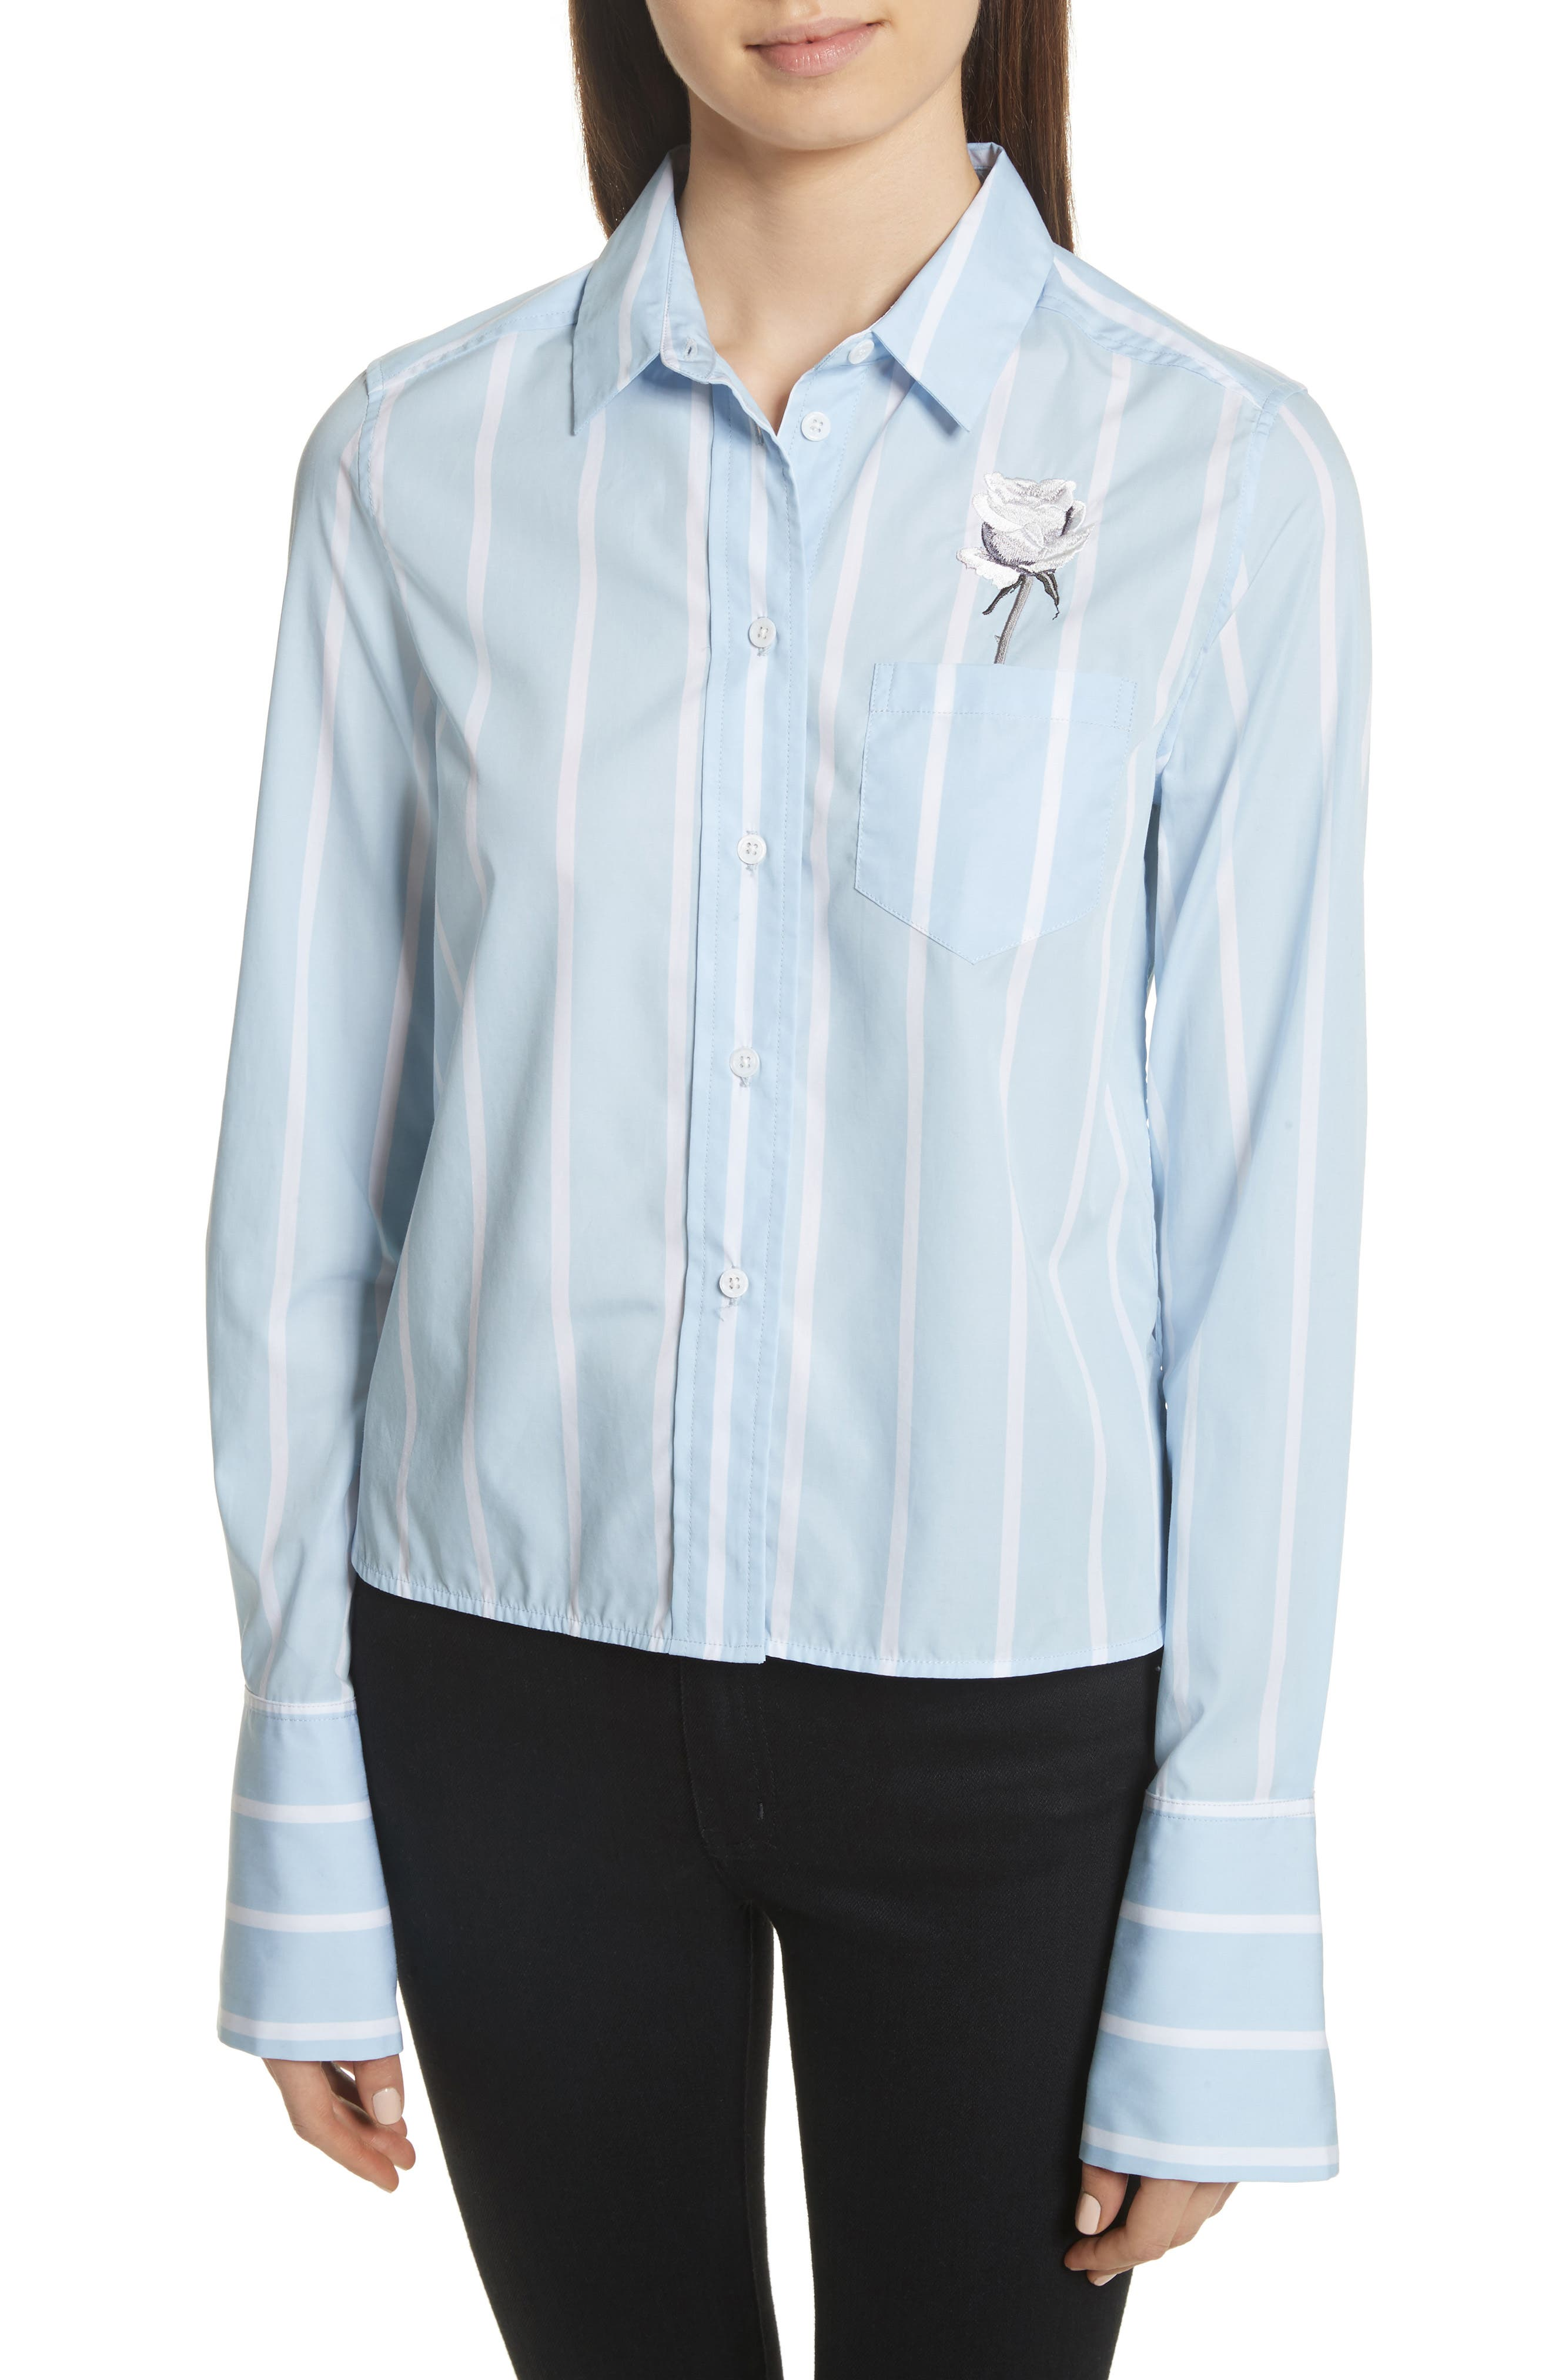 Huntley Embroidered Stripe Cotton Shirt,                         Main,                         color, Skylight / Bright White